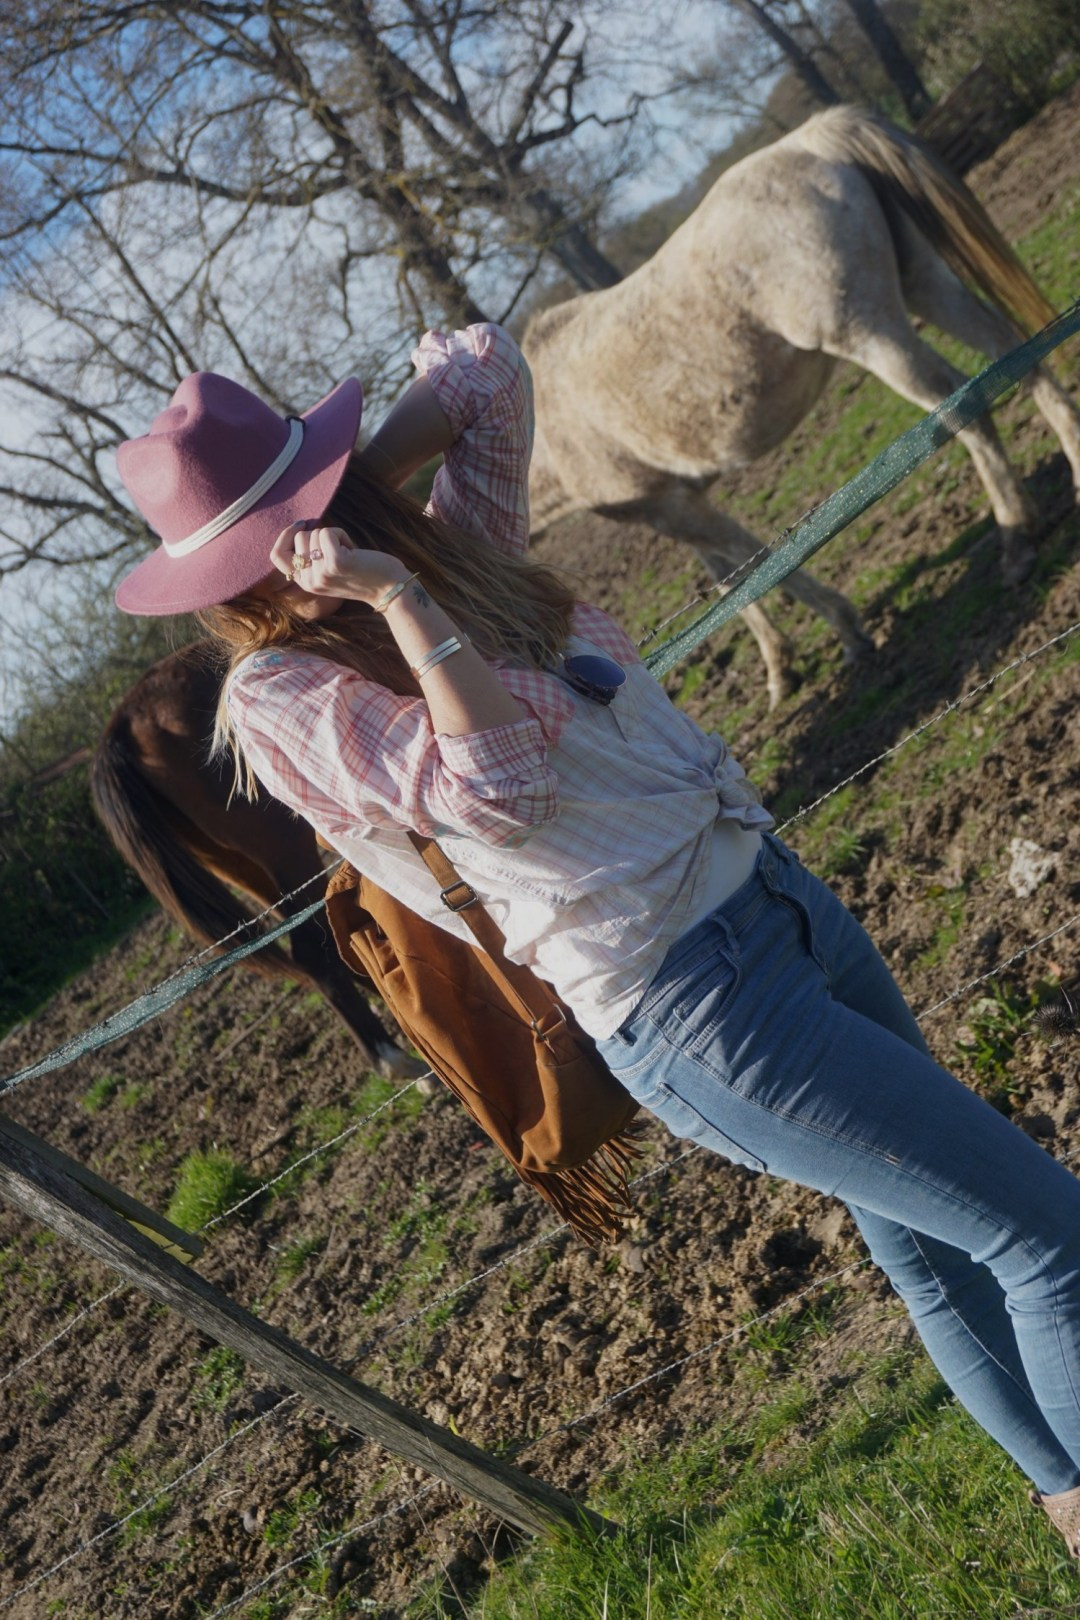 LOOK WESTERN GIRLY COW GIRL CHAPEAU ROSE BLOG MODE BORDEAUX FRANCE CORSE FASHION CENTRE EQUESTRE 04